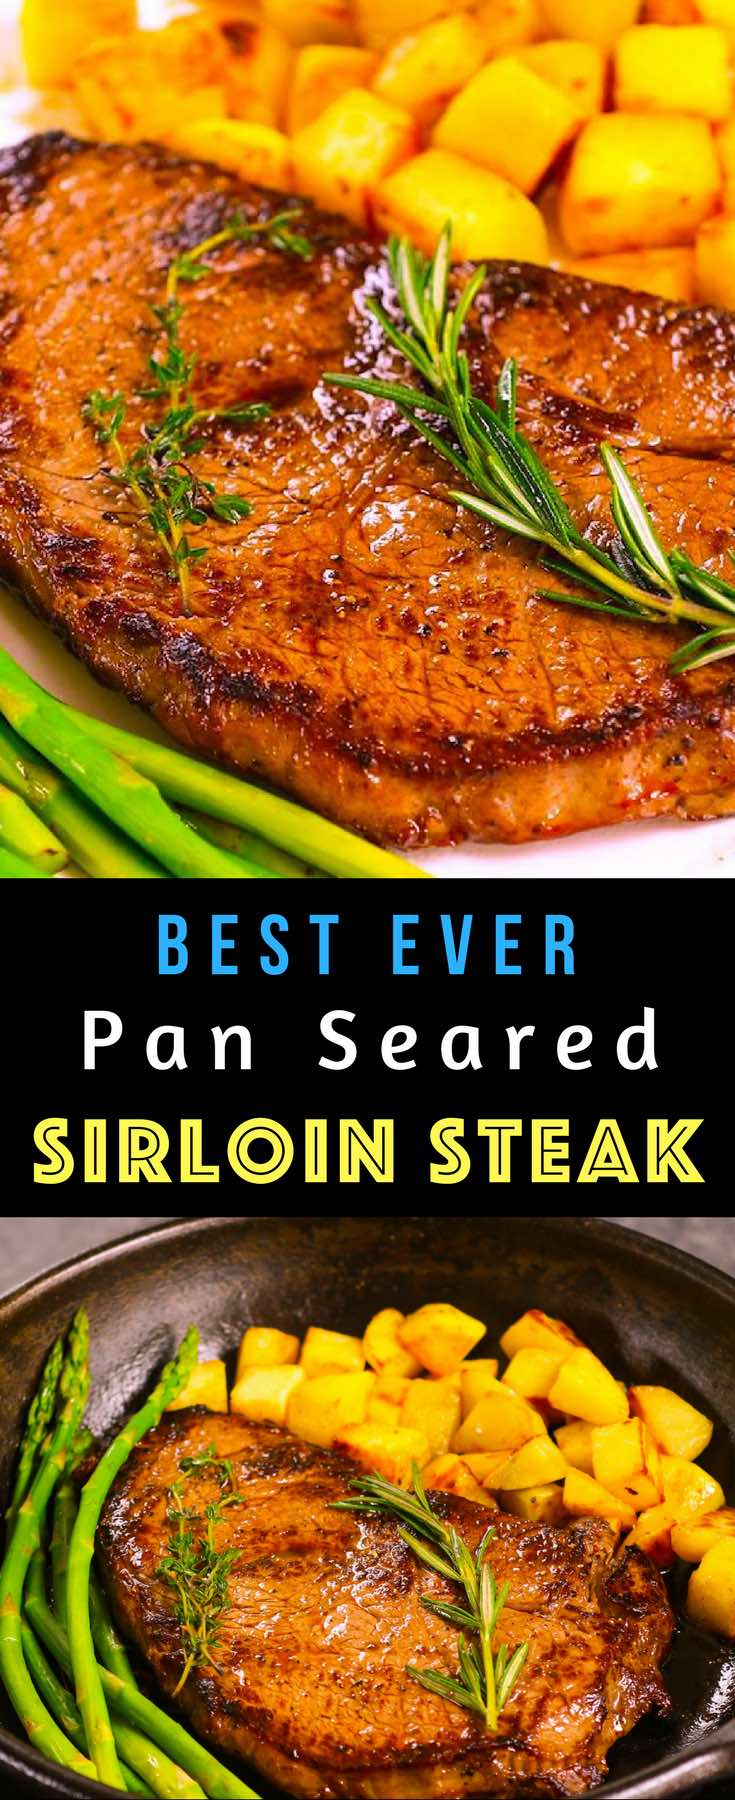 This is the top Sirloin Steak recipe you can make on a stovetop. It's tender, juicy and easy to make in 15 minutes for an elegant weeknight dinner. Serve with sauteed potatoes and green vegetables for the perfect meal. #SirloinSteak #panSearedSteak